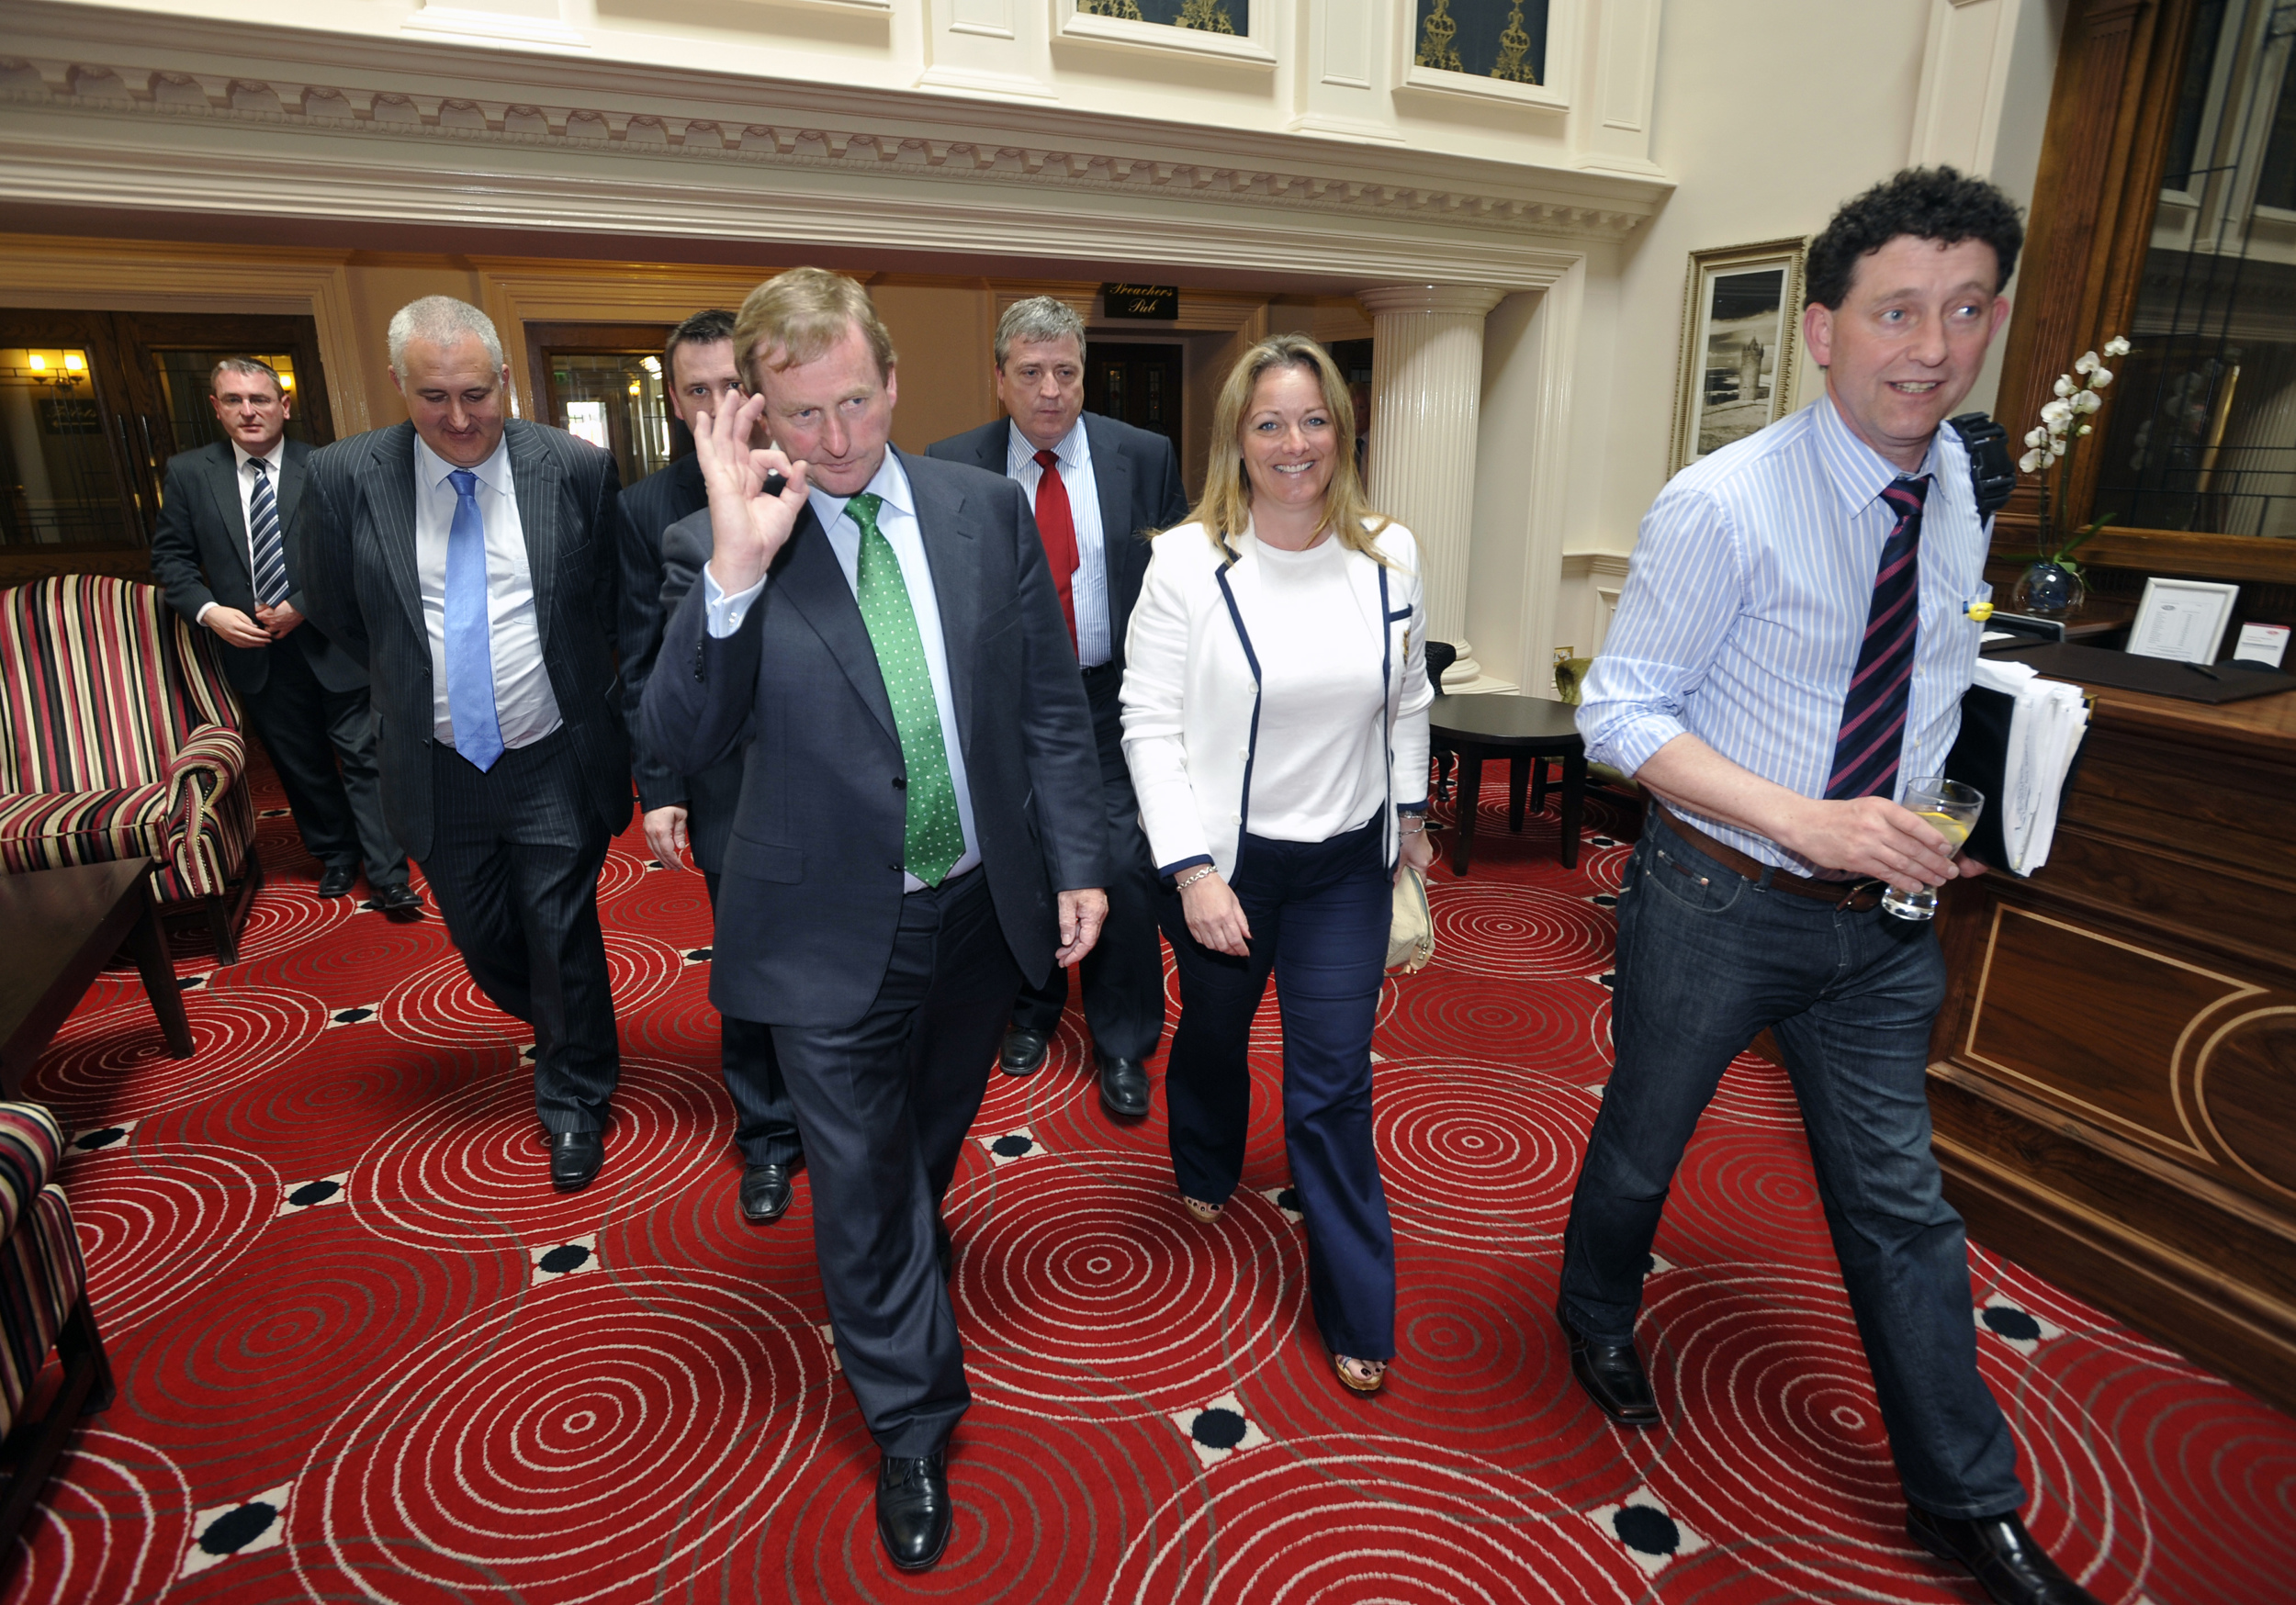 Fine Gael Enda Kenny with local election candidates Roger Fox, Mary Howard, Johnny Flynn as well as Td's Joe Carery and Pat Breen during his visit to Ennis.